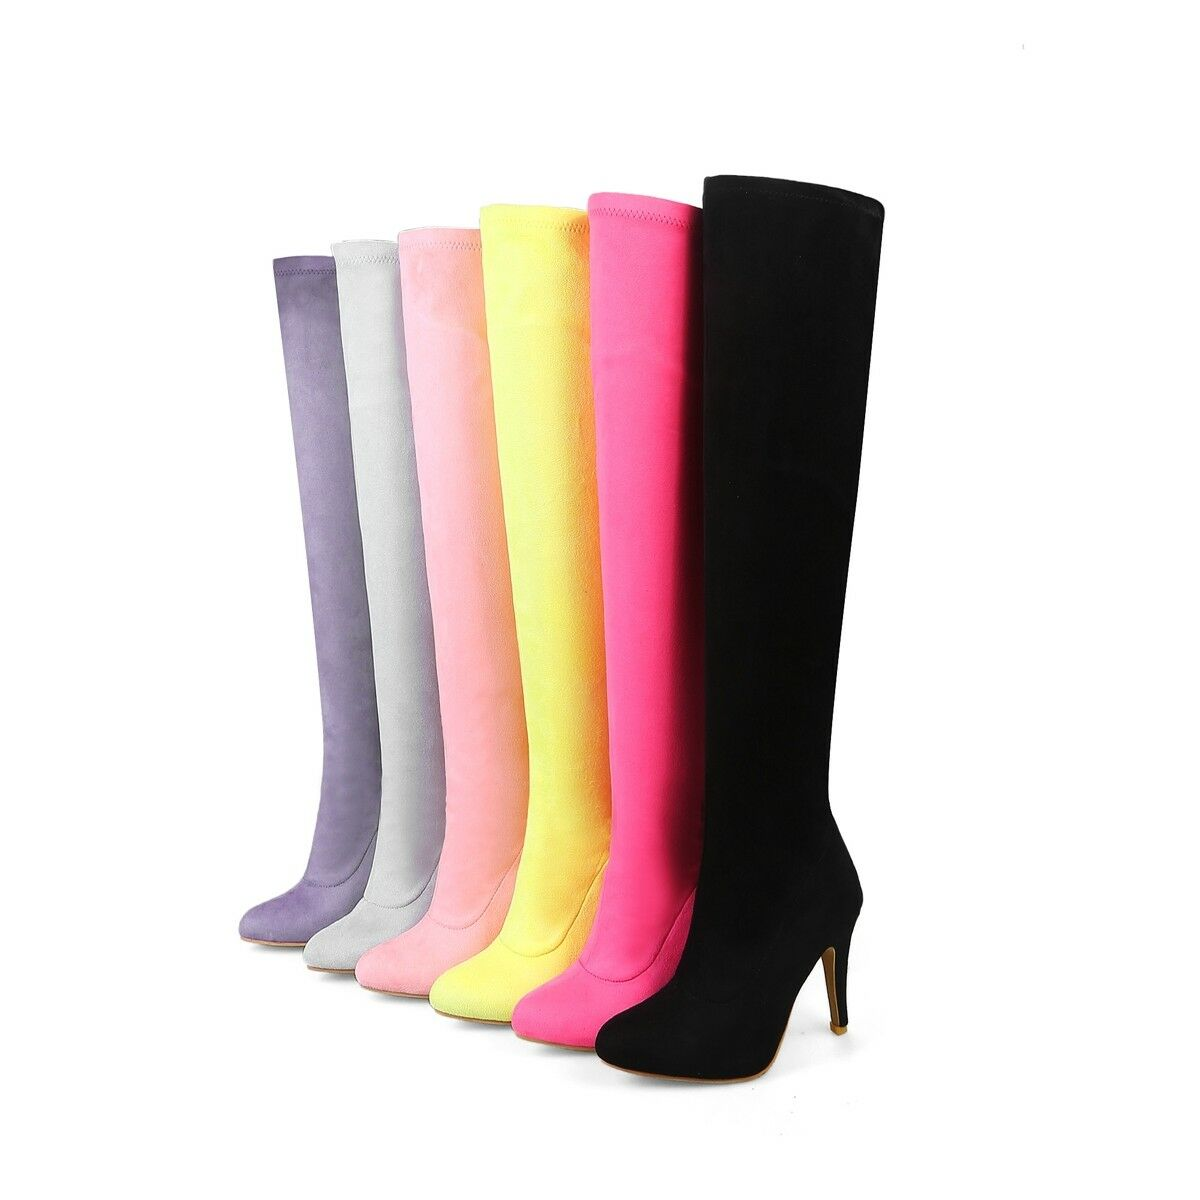 Women's Stretch Over Knee Thigh High Boots Candy Colour Heels shoes UK Size O300